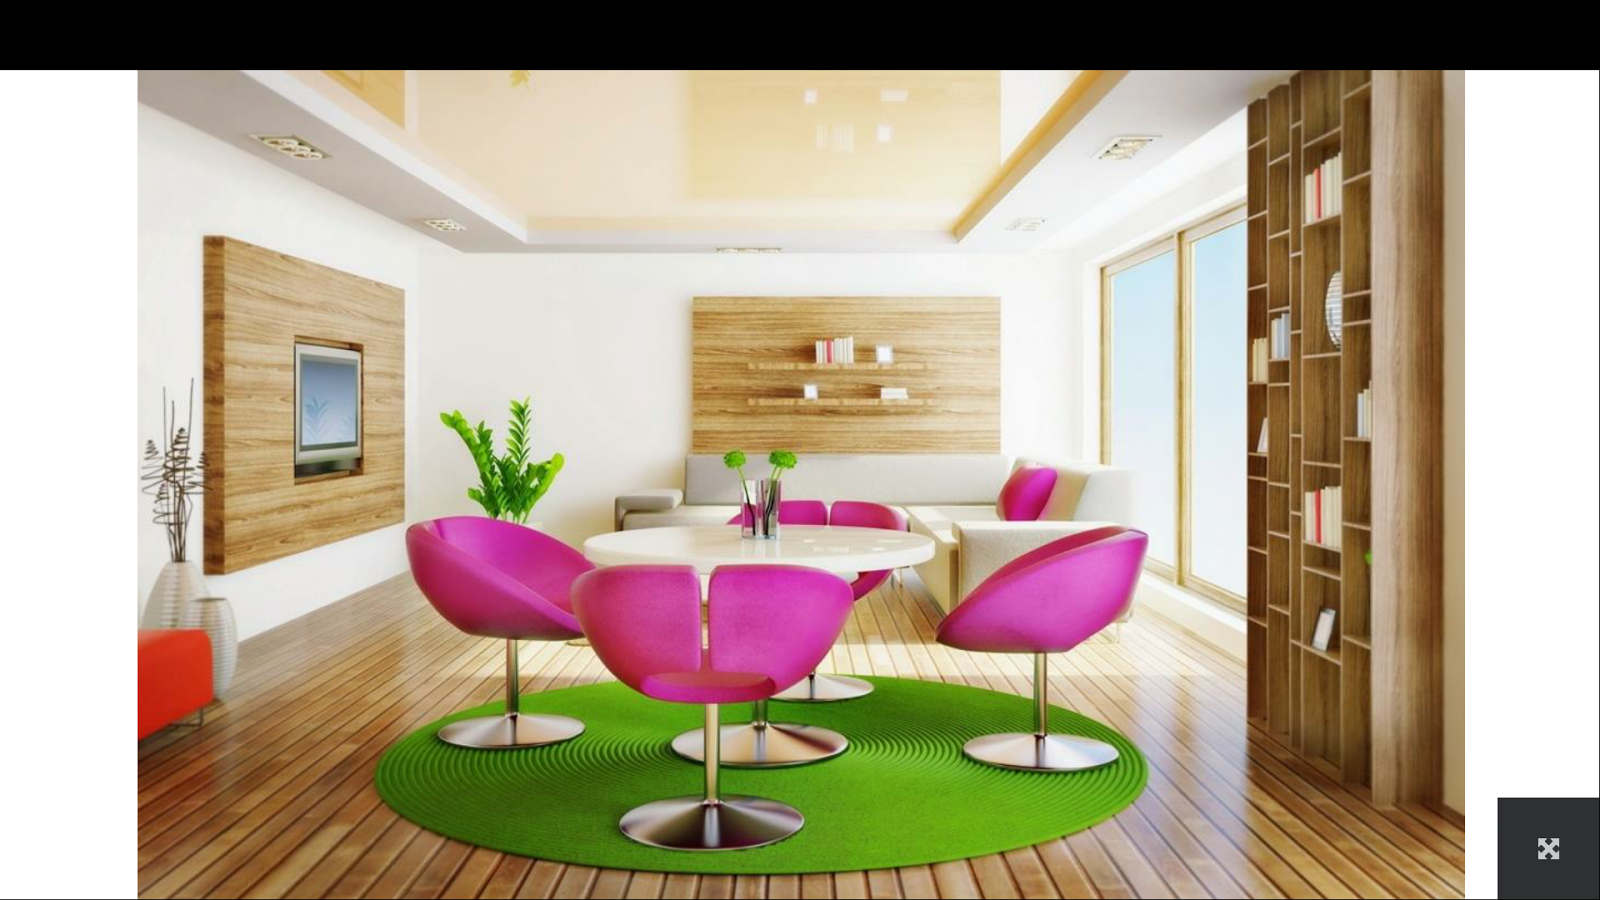 Interior Decorating Ideas Android Apps on Google Play